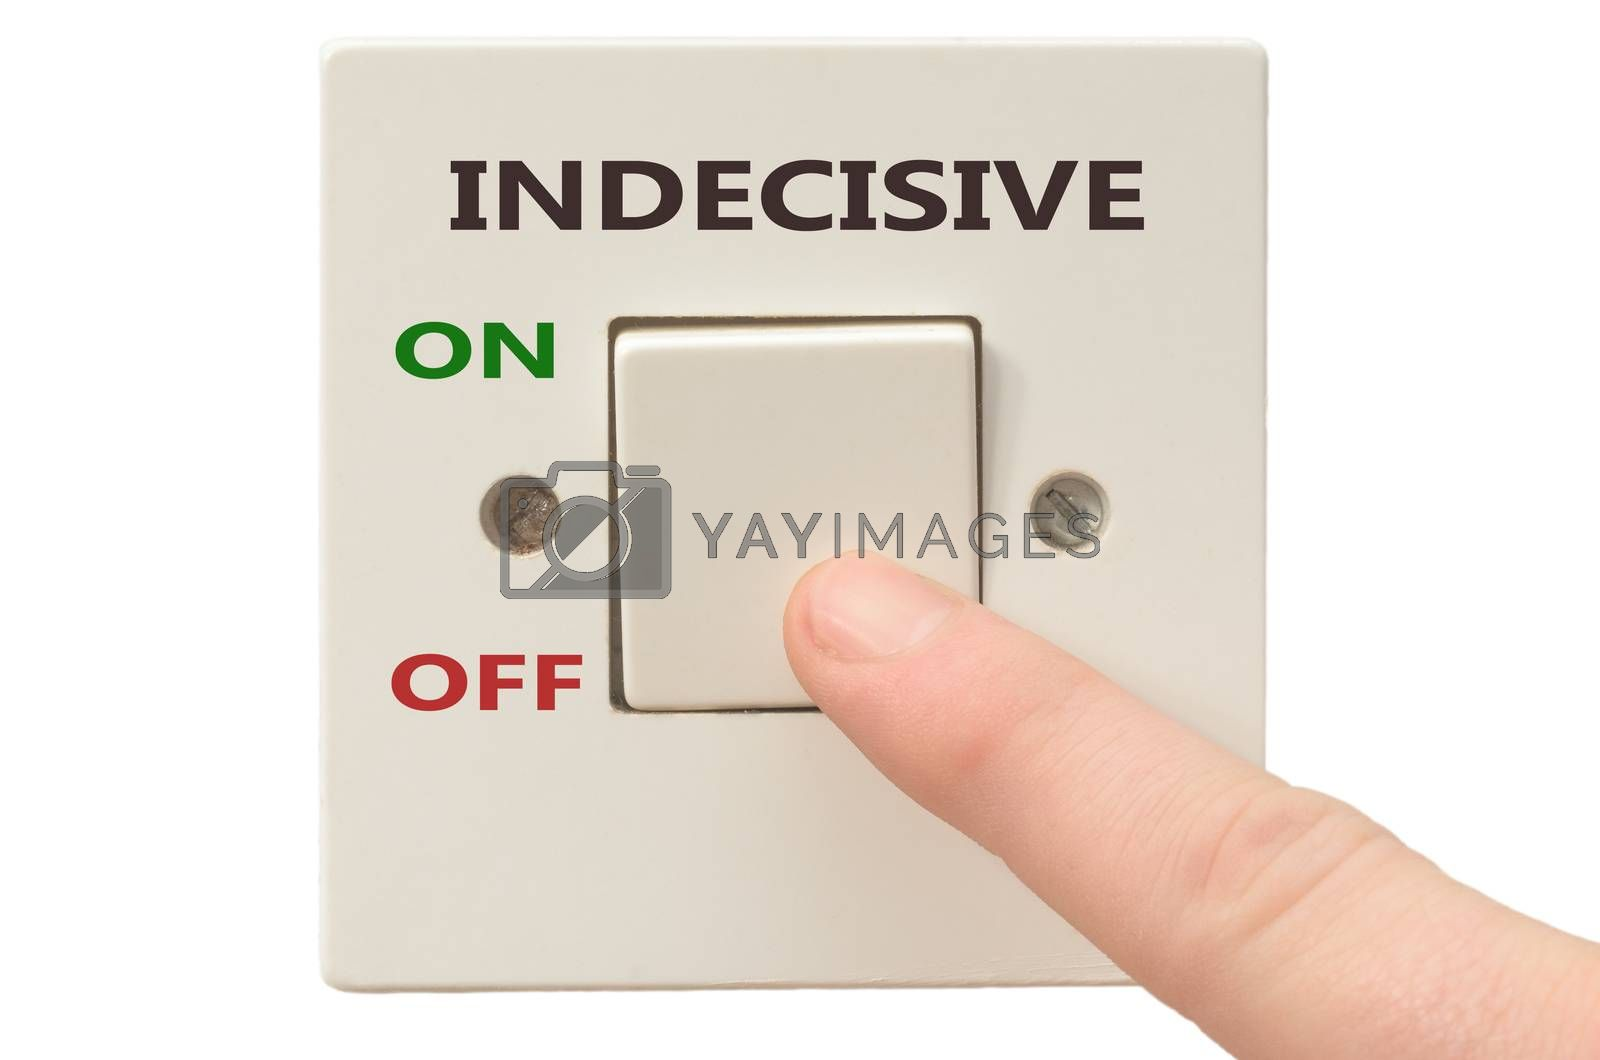 Turning off Indecisive with finger on electrical switch